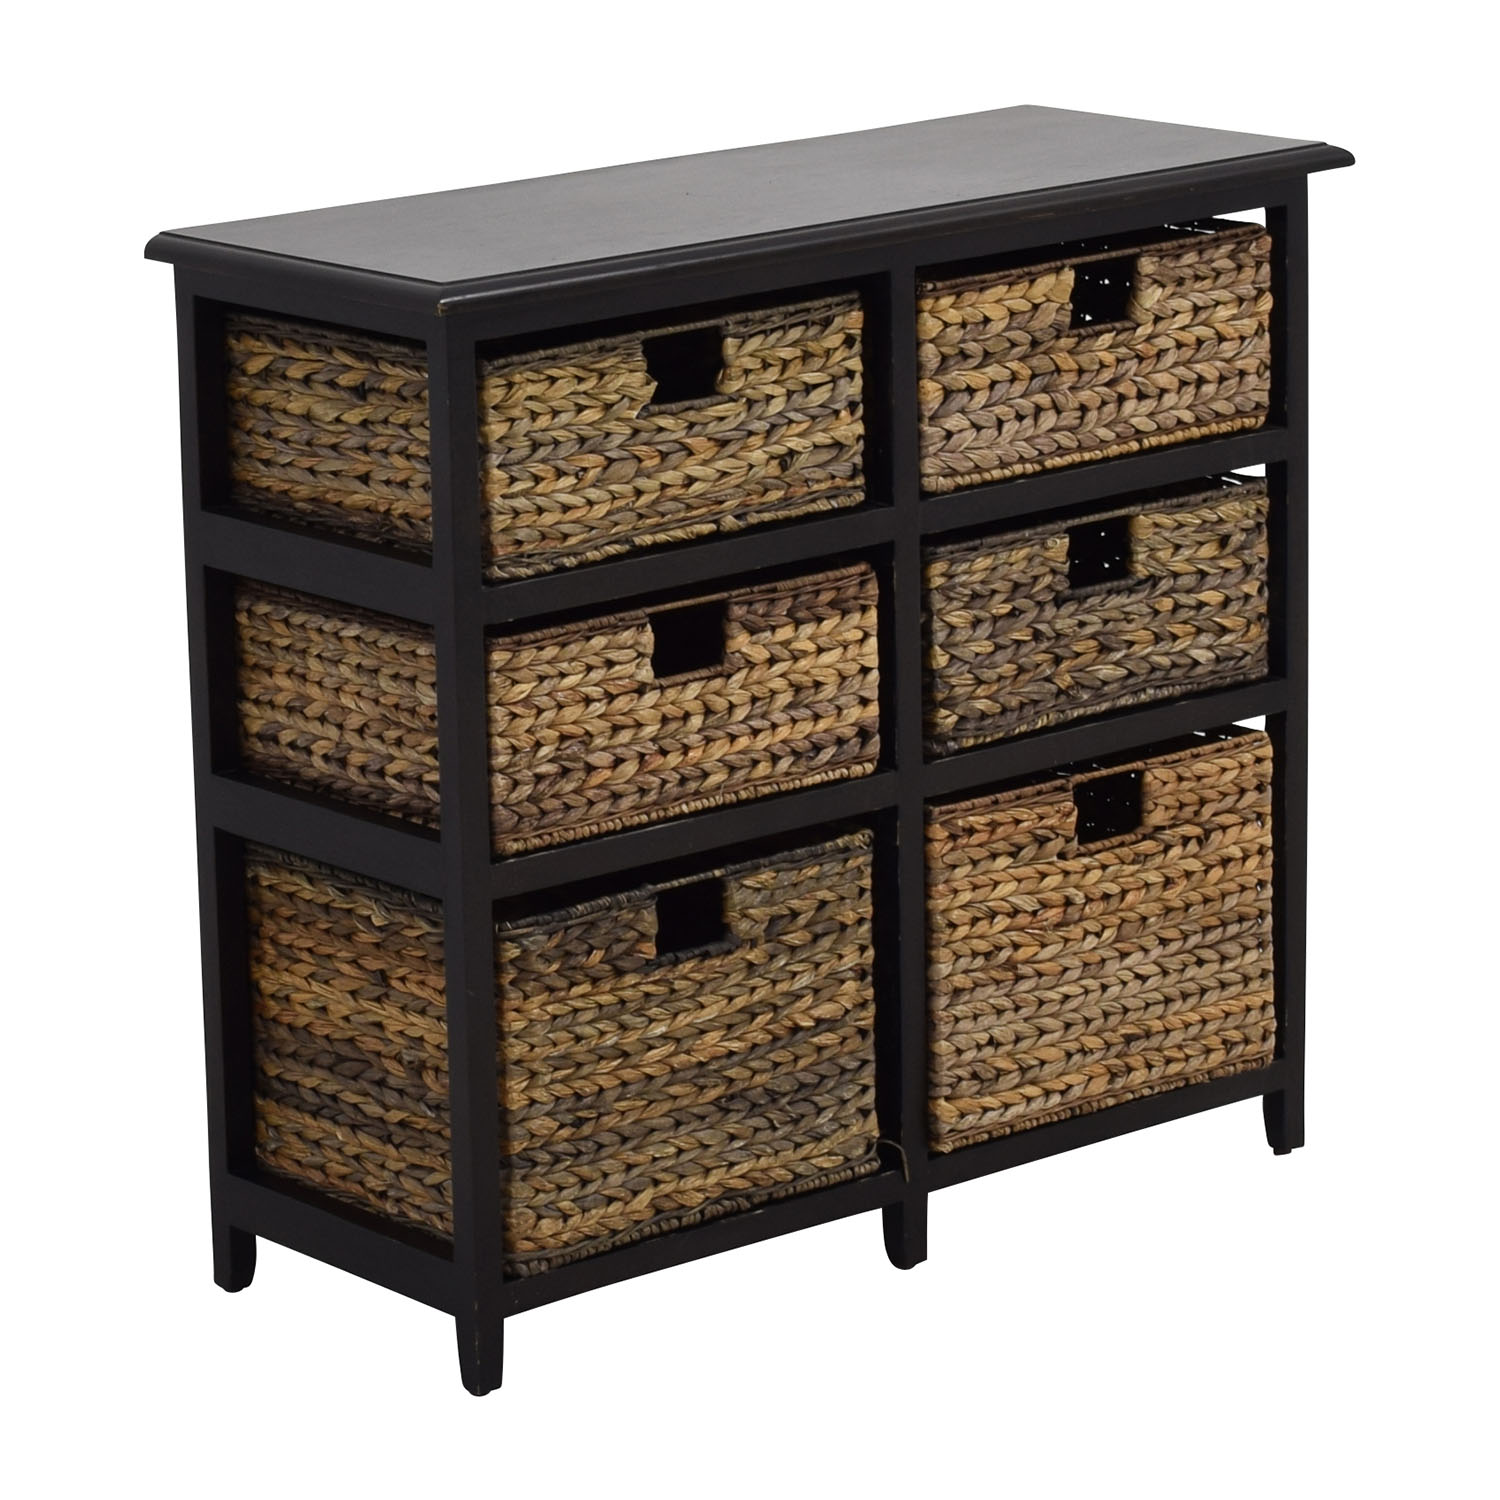 41 Off Pier 1 Imports Pier 1 Imports Black Wicker